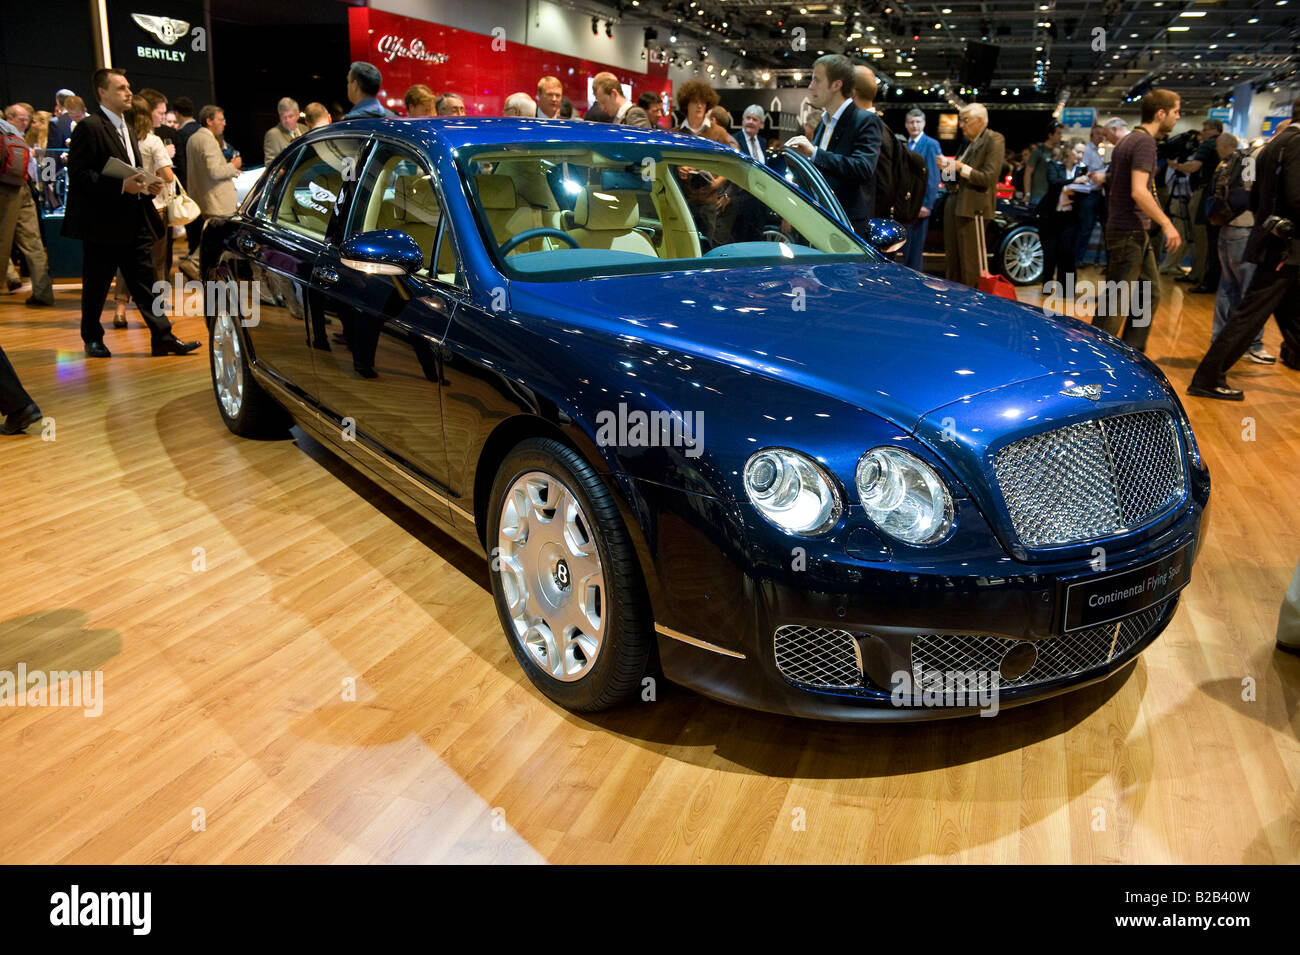 Bentley Continental Flying Spur at the 2008 British International Motorshow at Excel Docklands London - Stock Image